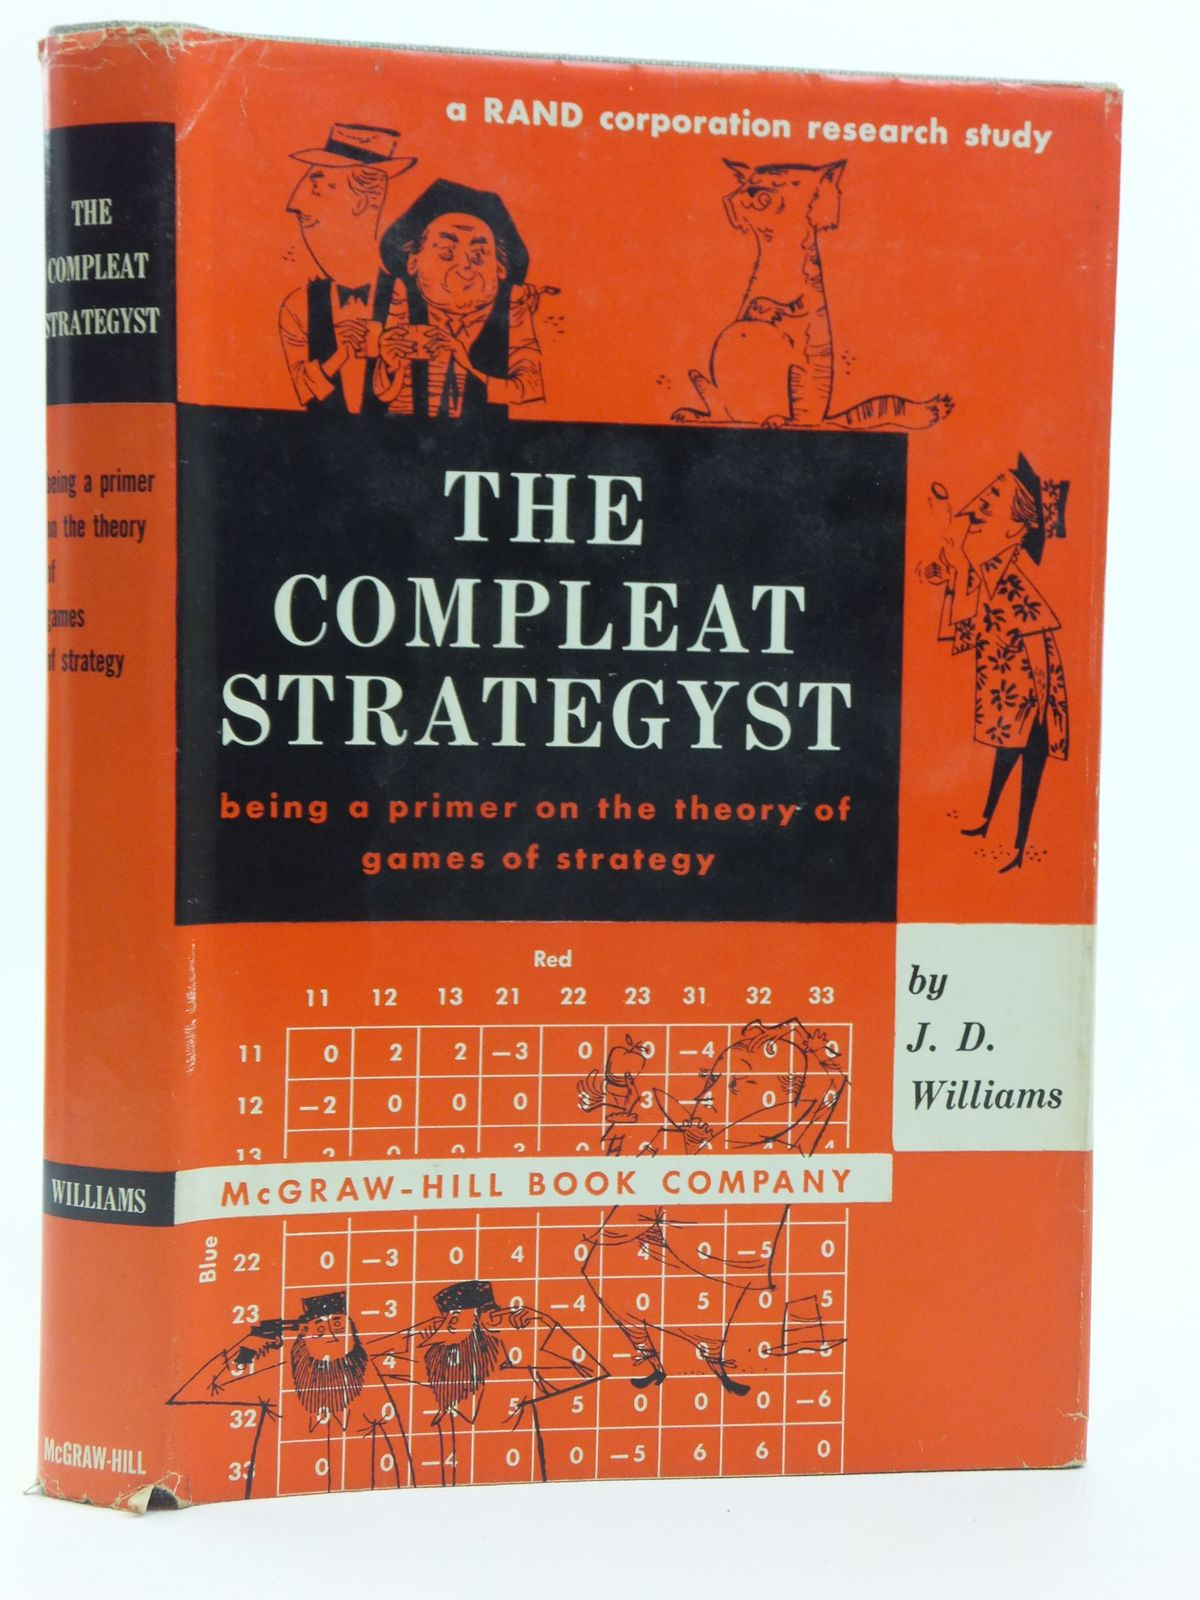 Photo of THE COMPLEAT STRATEGYST BEING A PRIMER ON THE THEORY OF GAMES AND STRATEGY written by Williams, J.D. illustrated by Satterfield, Charles published by McGraw-Hill Book Company (STOCK CODE: 2120714)  for sale by Stella & Rose's Books